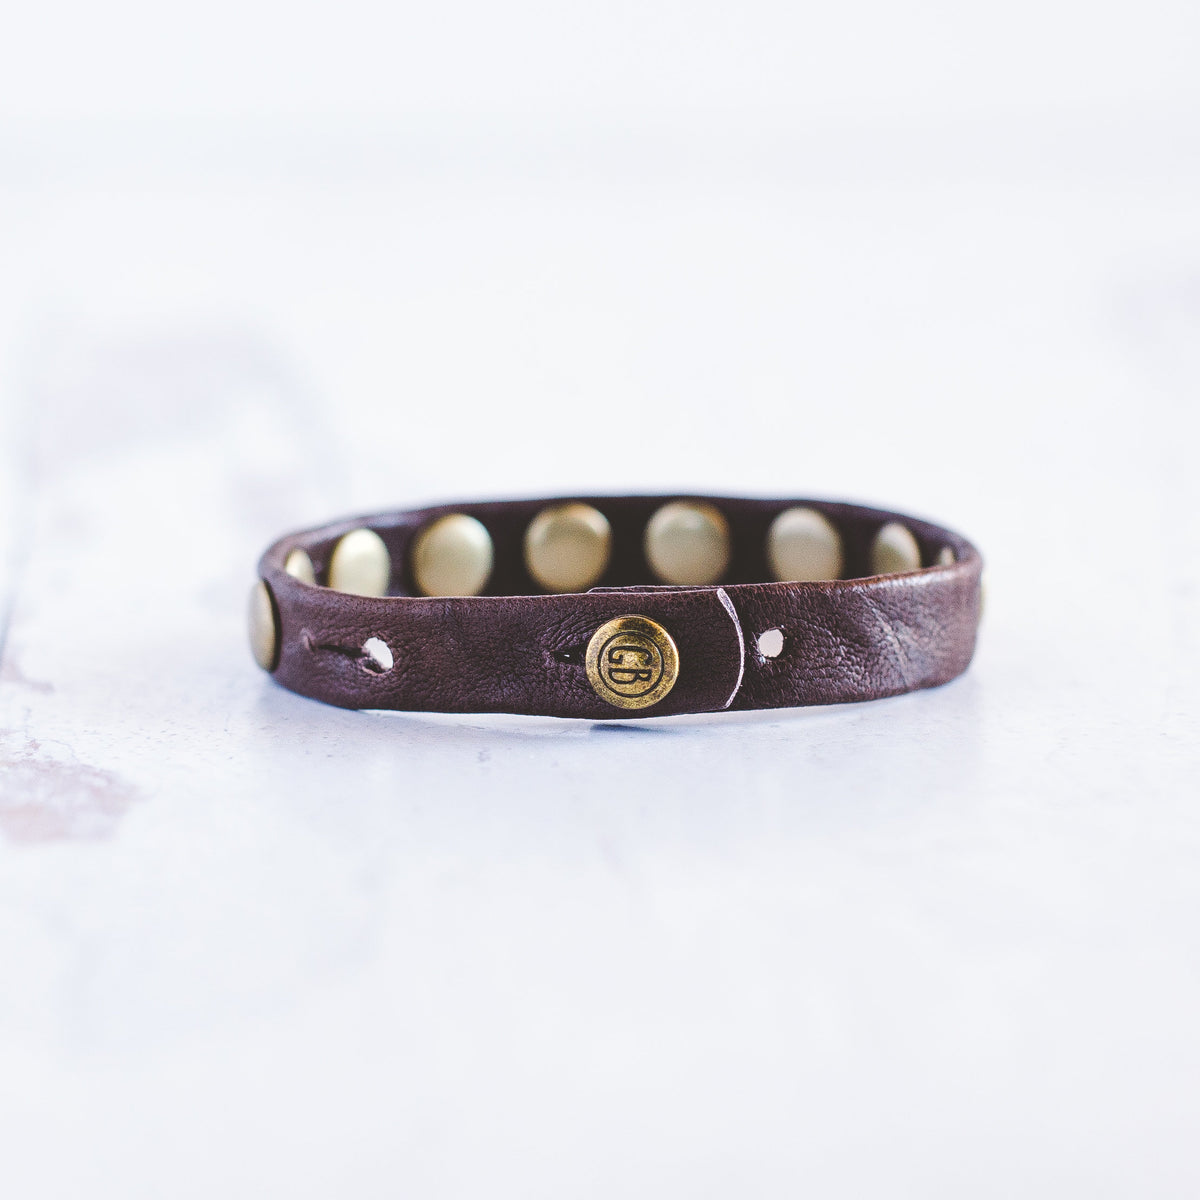 Rockstar Bracelet  - Antique Brass